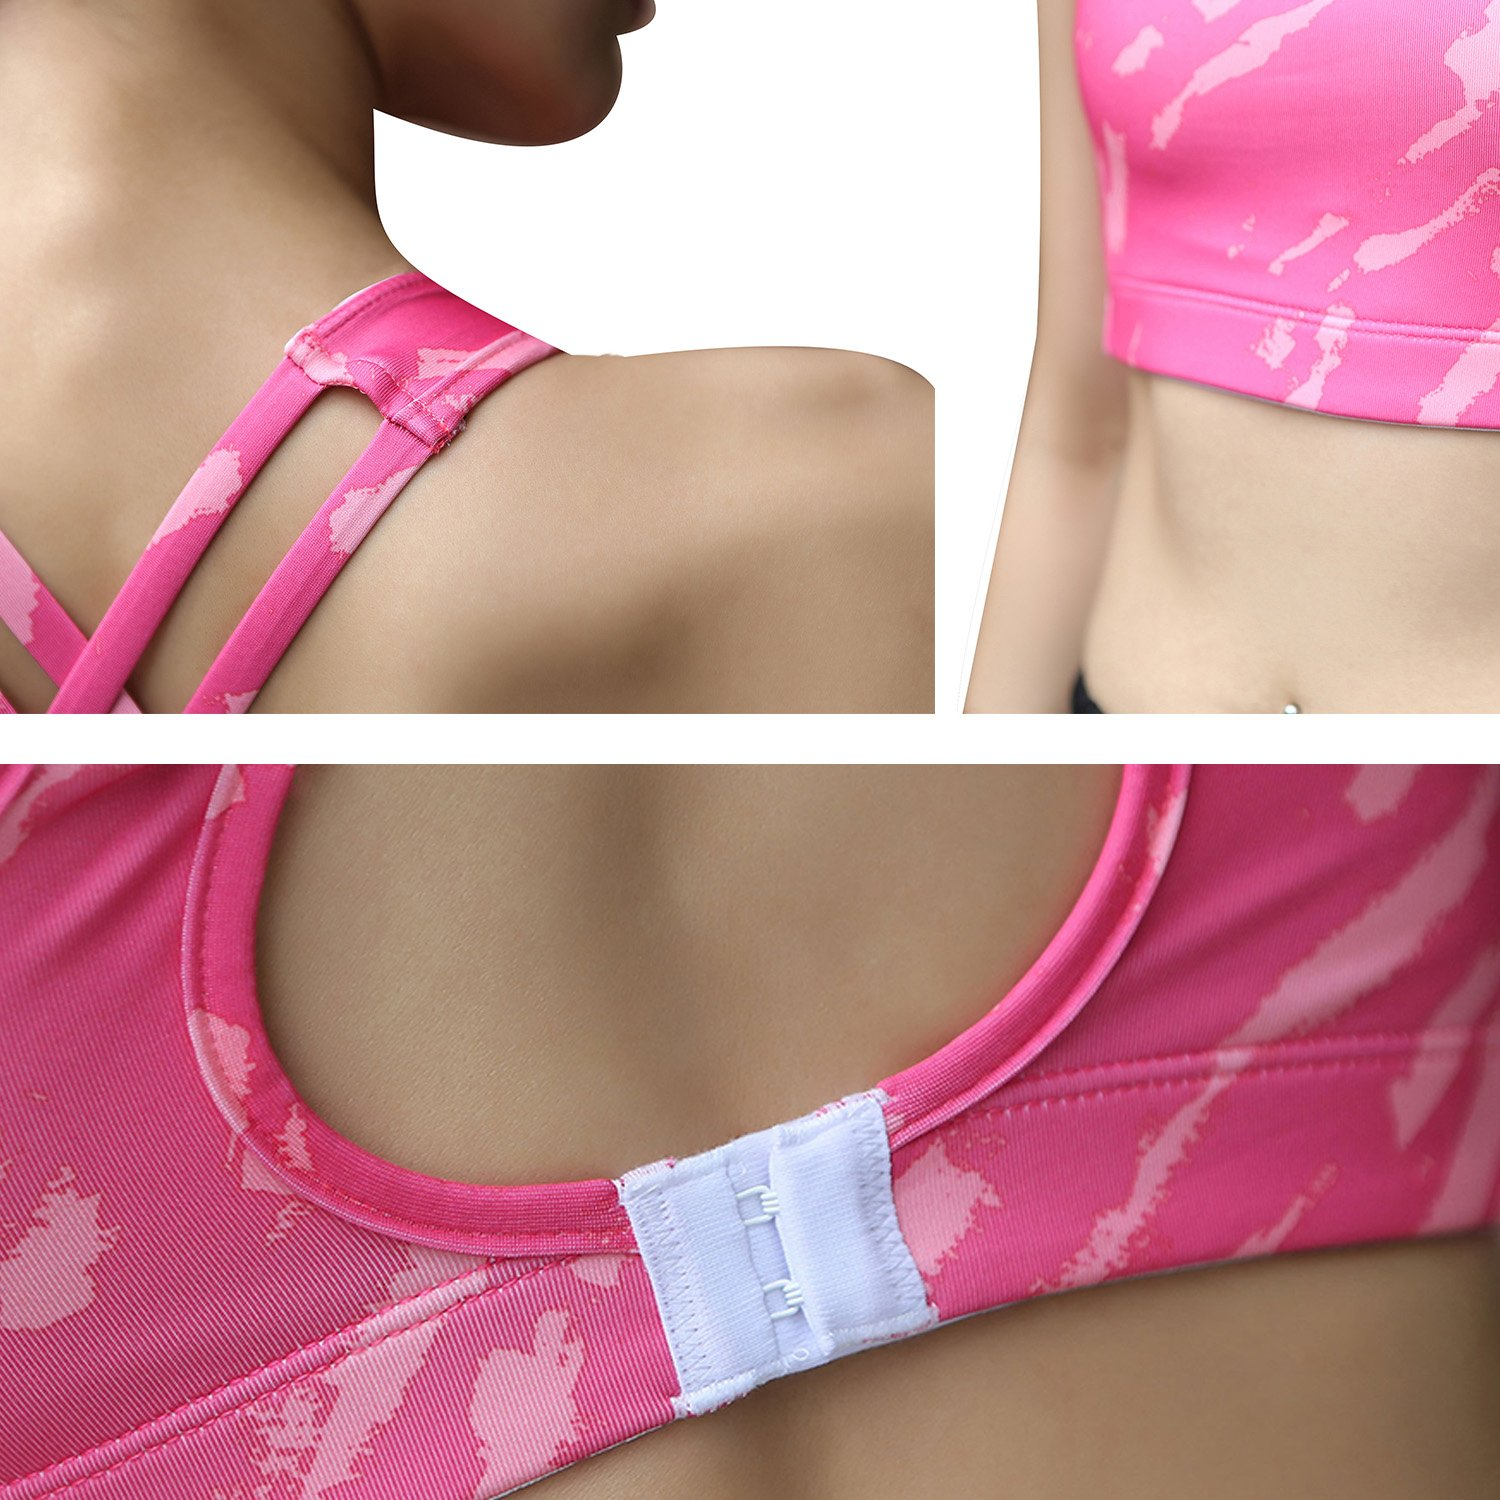 newlashua Padded Strappy Sports Bra Yoga Tops Activewear Gym Workout Clothes Women XXL Pink